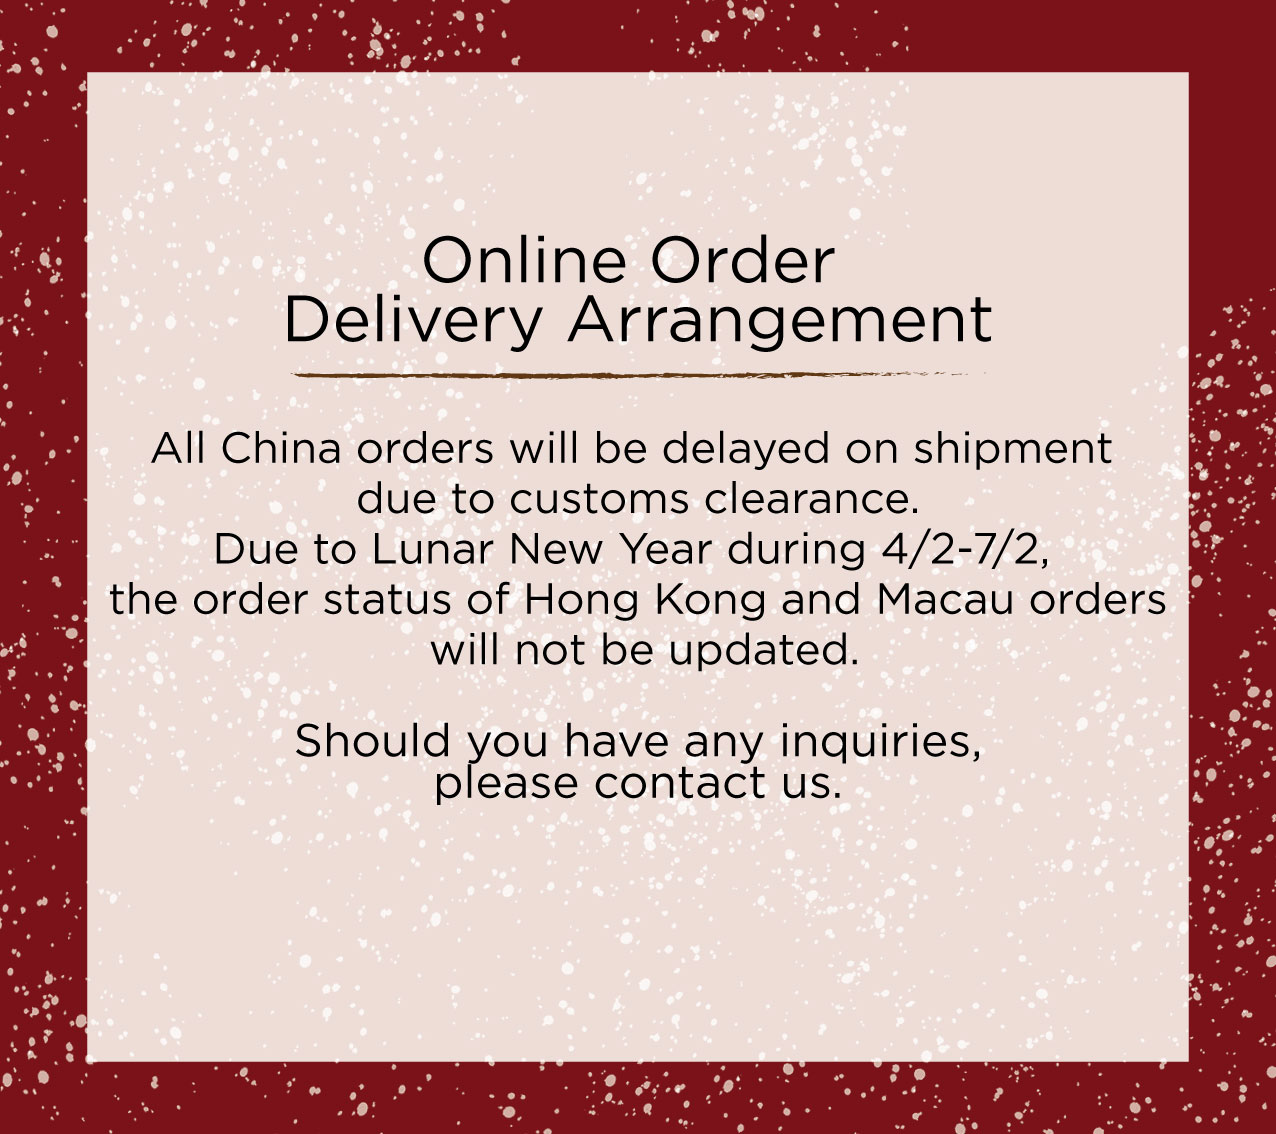 Online Order Delivery Arrangement All China orders will be delayed on shipment due to customs clearance. Due to Lunar New Year during 4/2-7/2, the order status of Hong Kong and Macau orders will not be updated. Should you have any inquiries, please contact us.